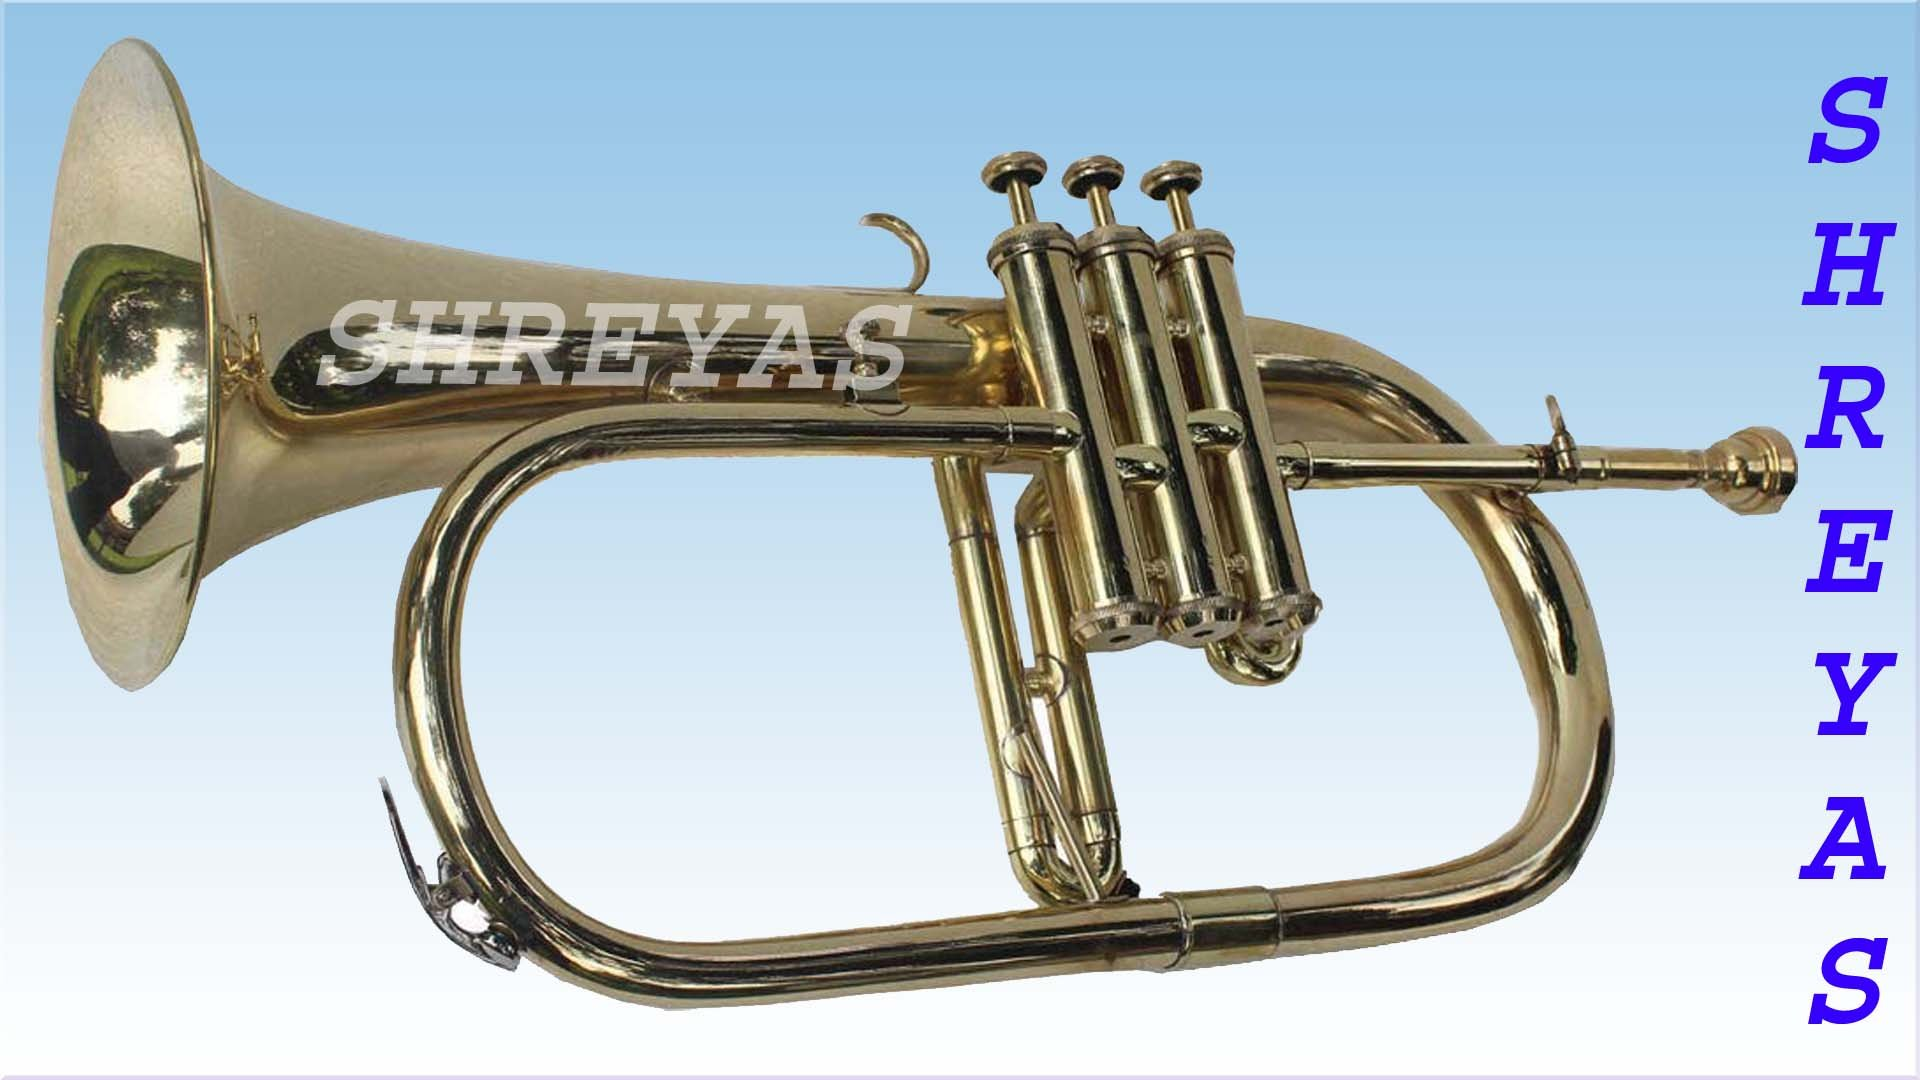 Shreyas Great Value 3-Valve Bb Natural Brass Flugel Horn Flugelhorn with Designer Hardcase VTR156 by SHREYAS (Image #1)